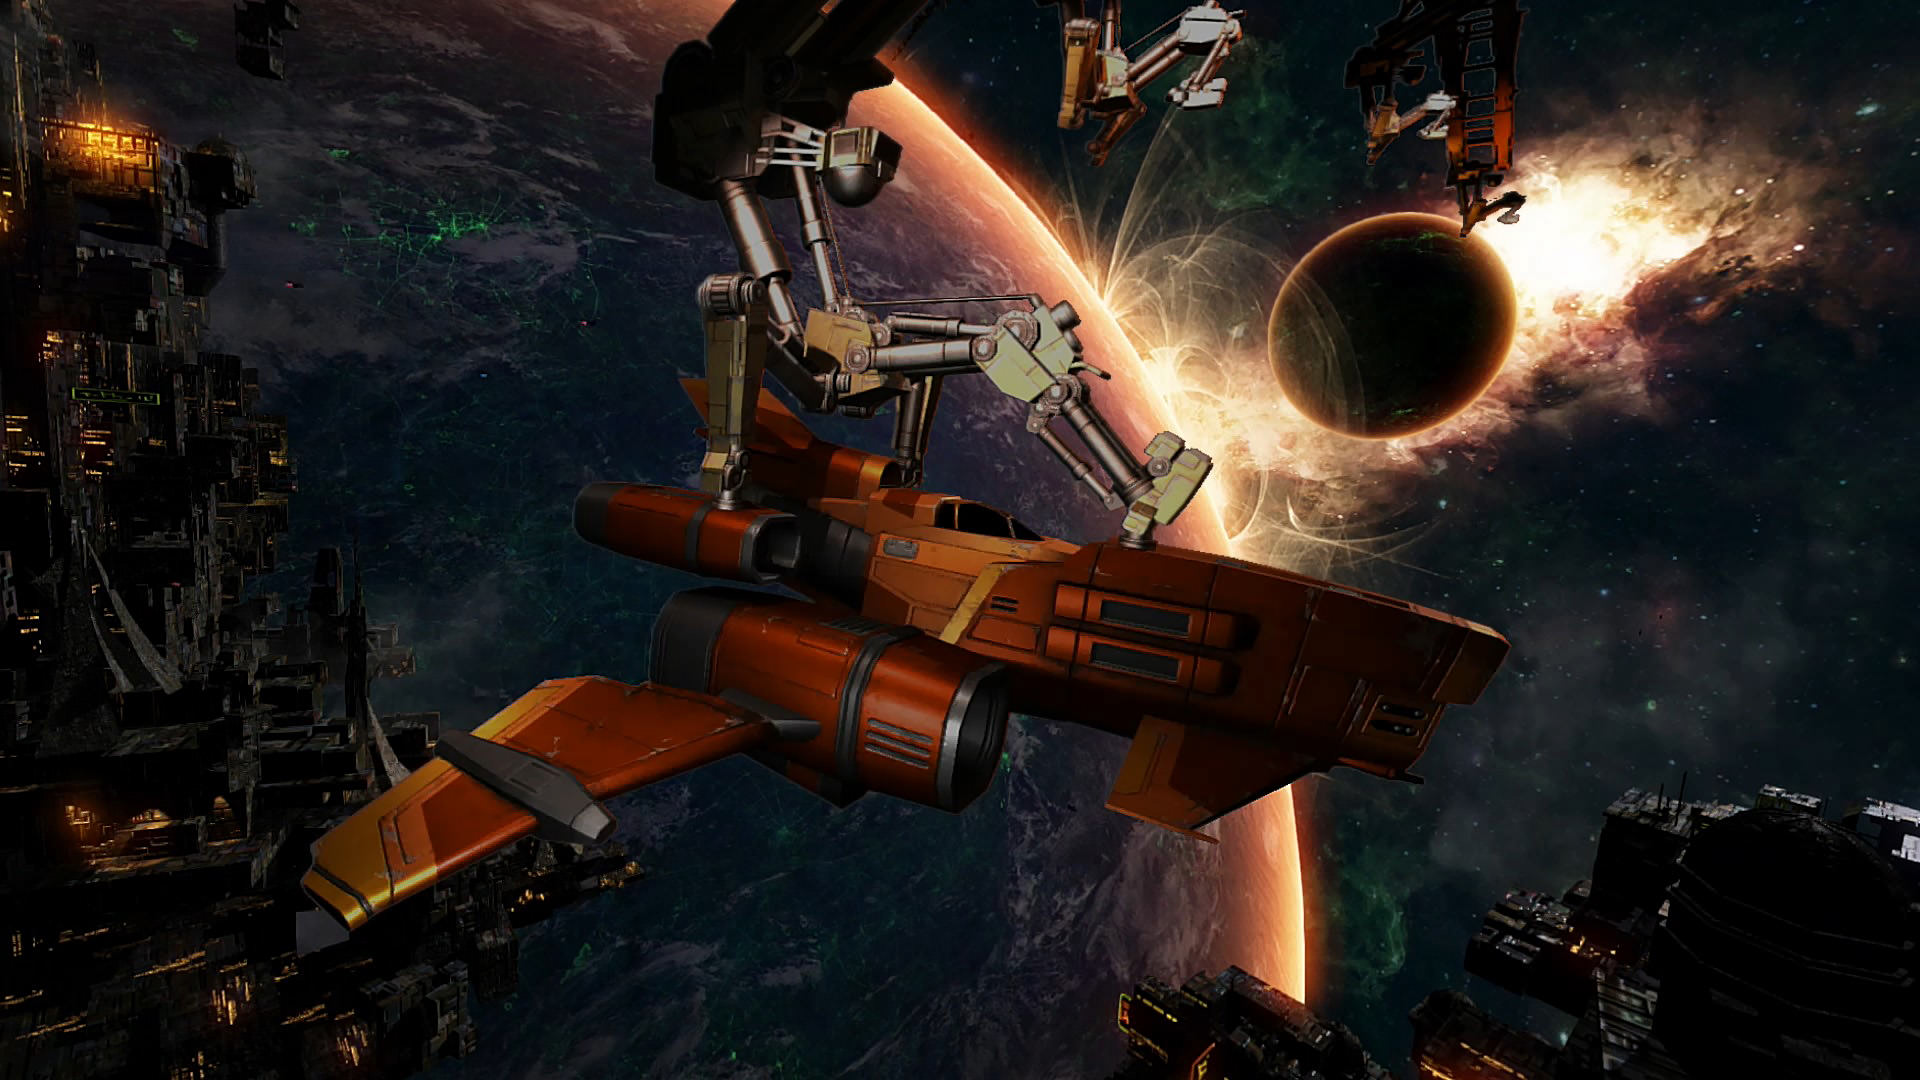 See the first level of co-op shoot-'em-up RiftStar Raiders in this developer walkthrough